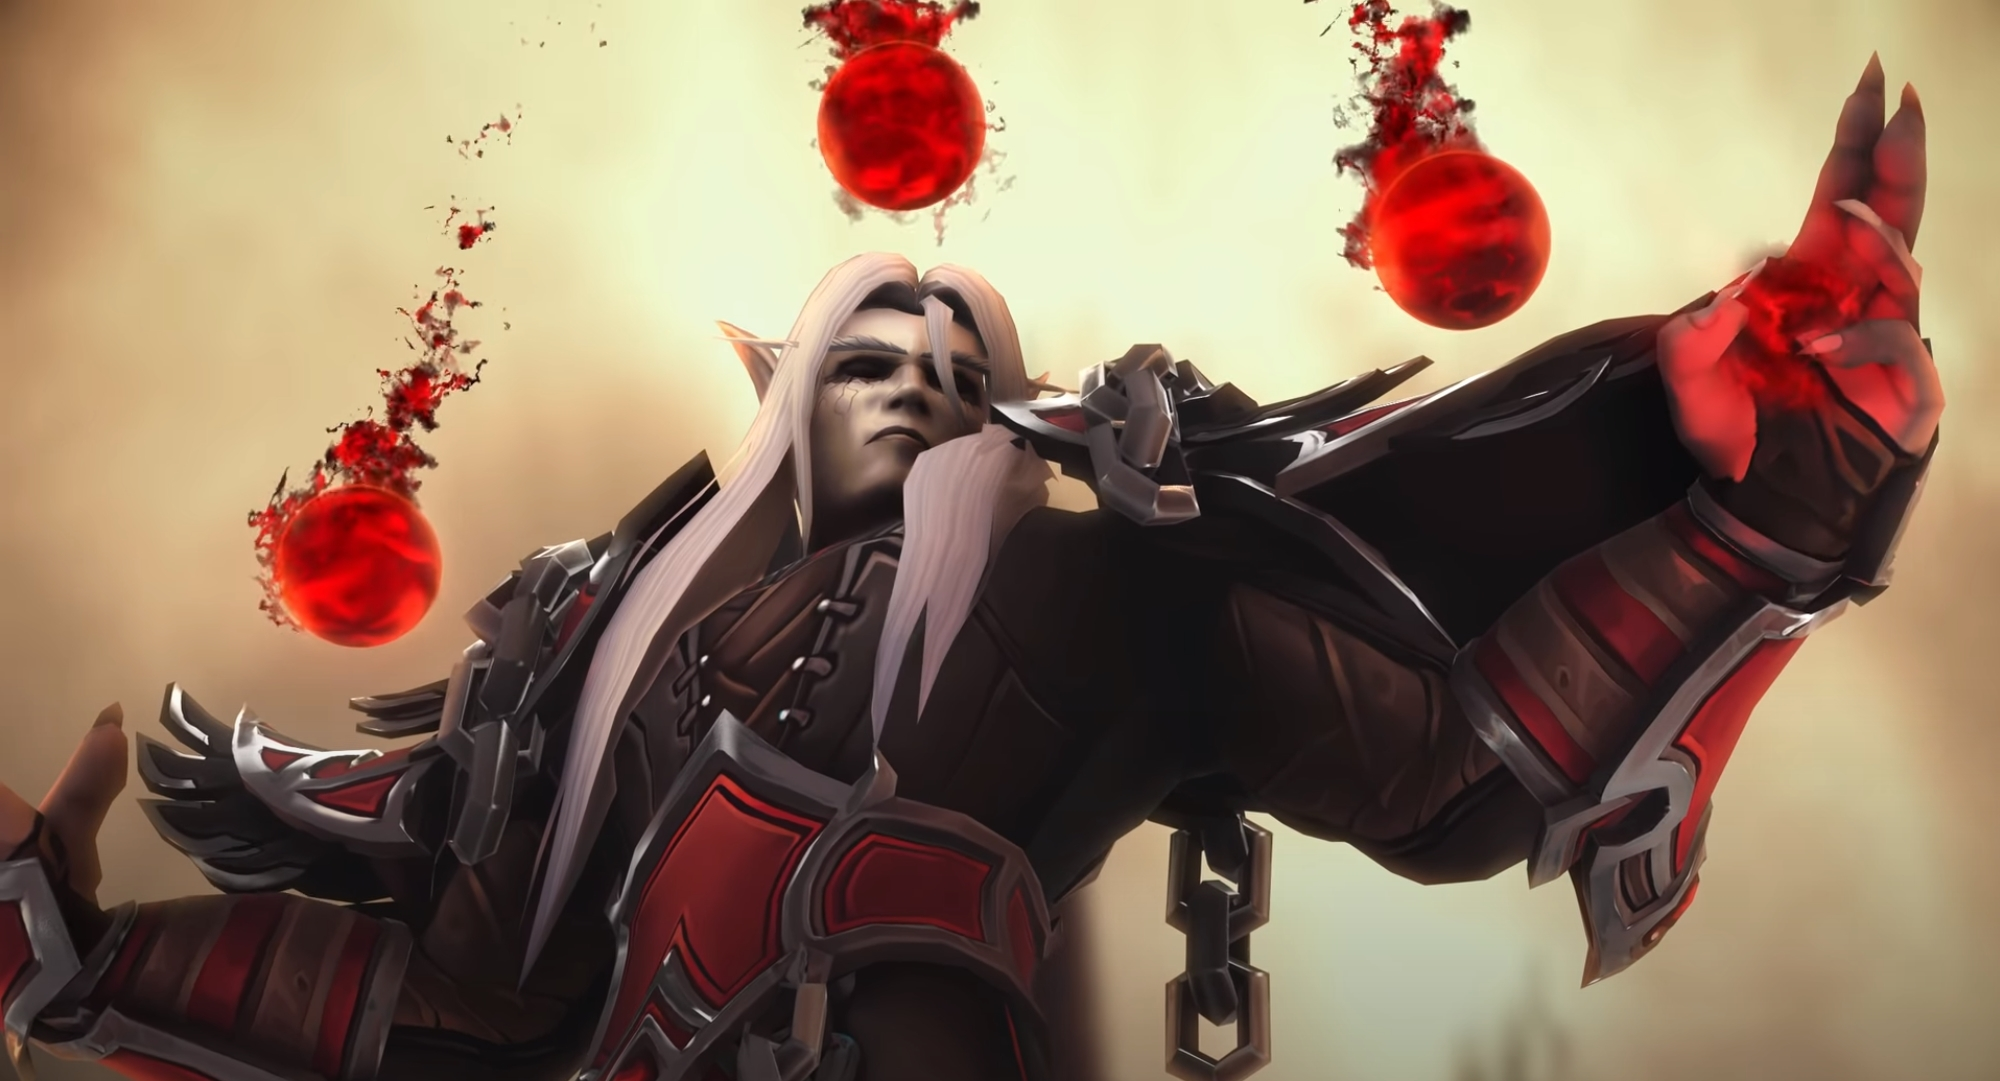 YouTuber Ikedit Remasters Kael'thas Heroes Of The Storm Trailer With World Of Warcraft: Shadowlands Assets